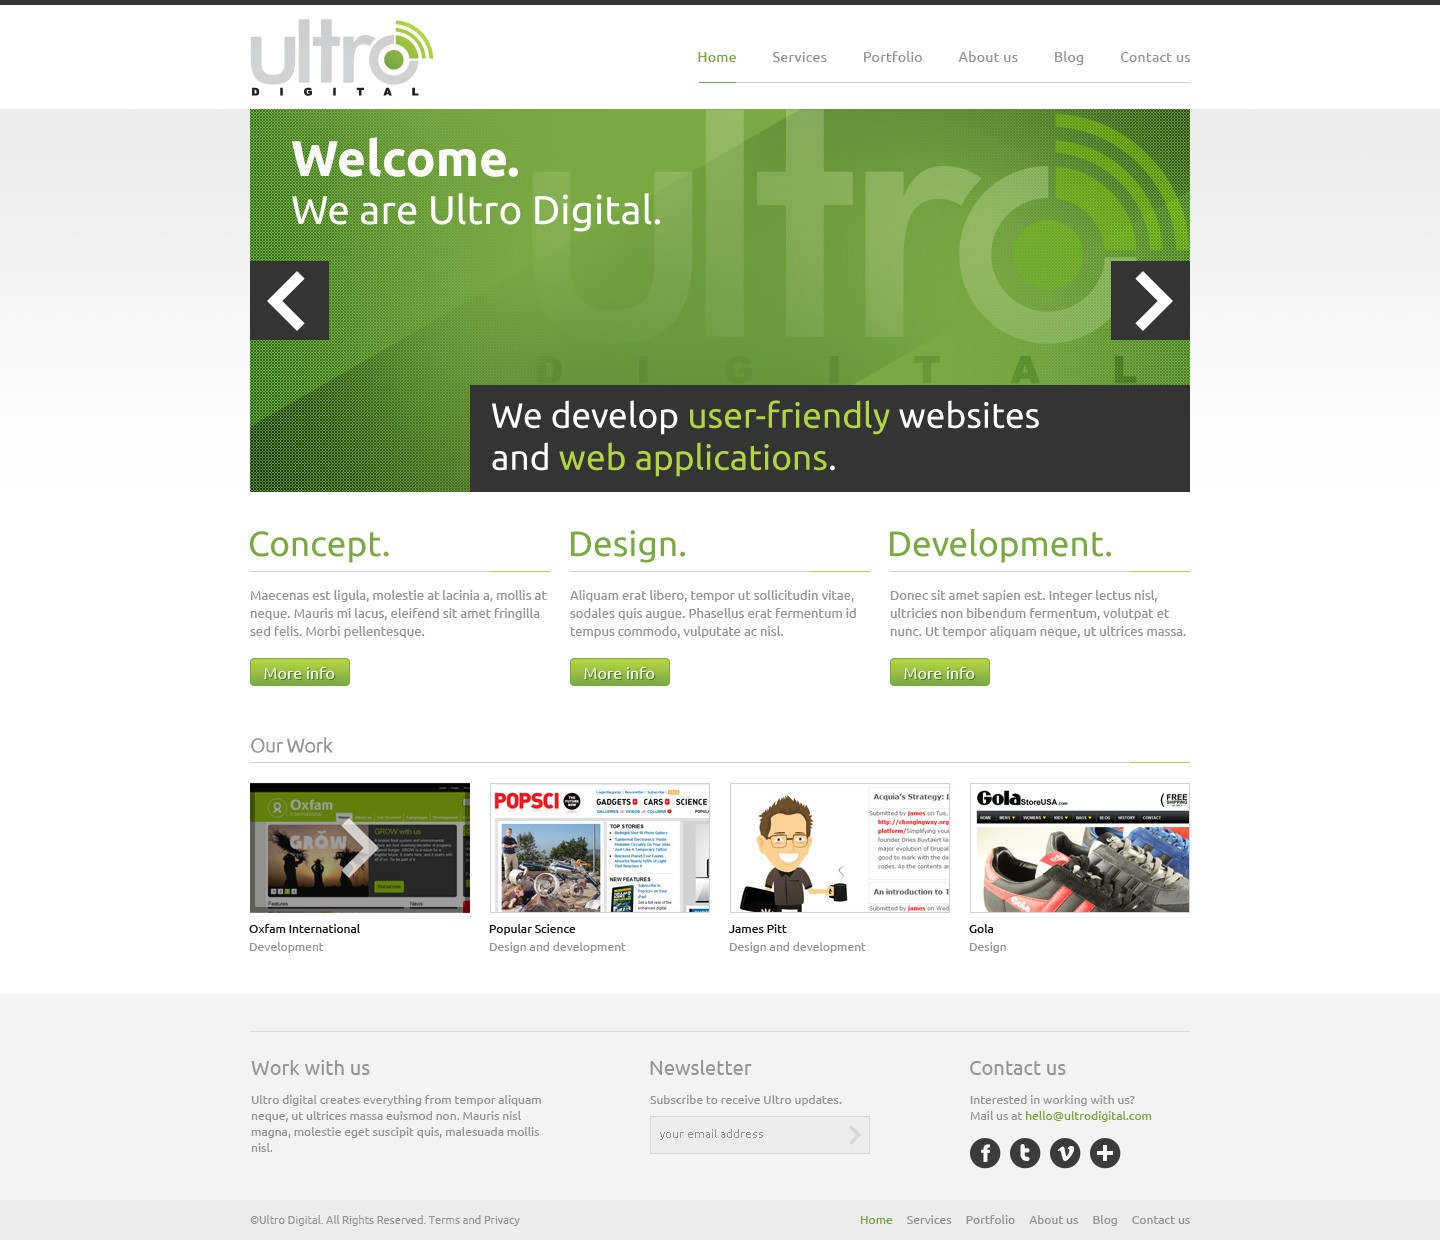 Help Ultro Digital with a new website design